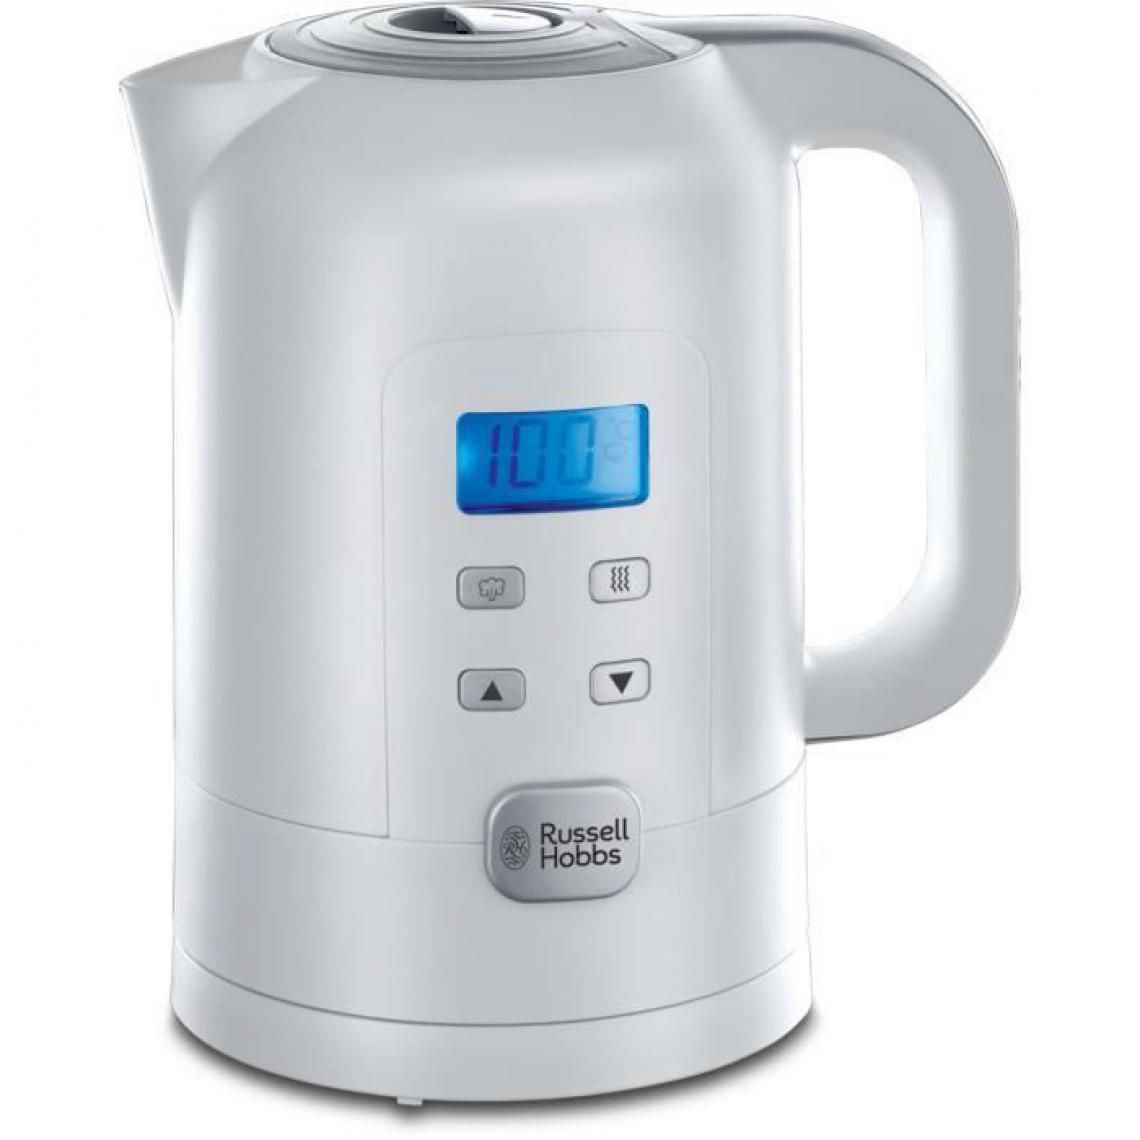 Russell Hobbs RUSSELL HOBBS 21150-70 - Bouilloire Precision Control - 1,7 L - 2200 W